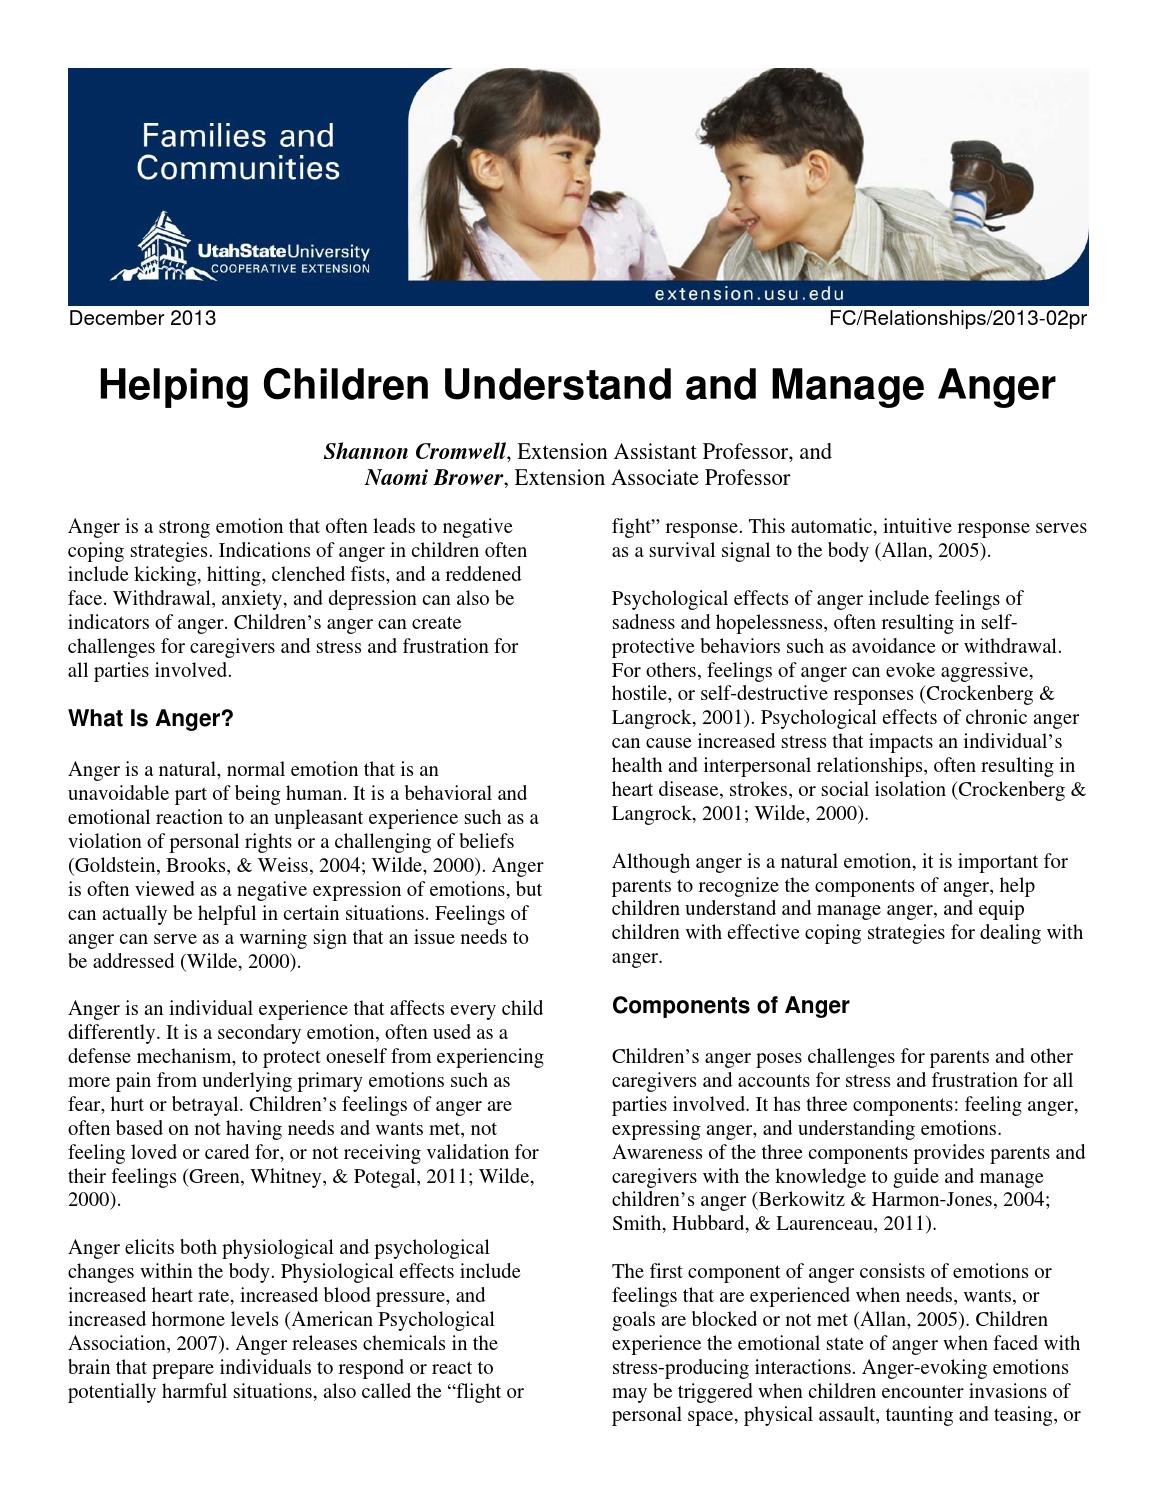 Helping Children Understand and Manage Anger by Utah State